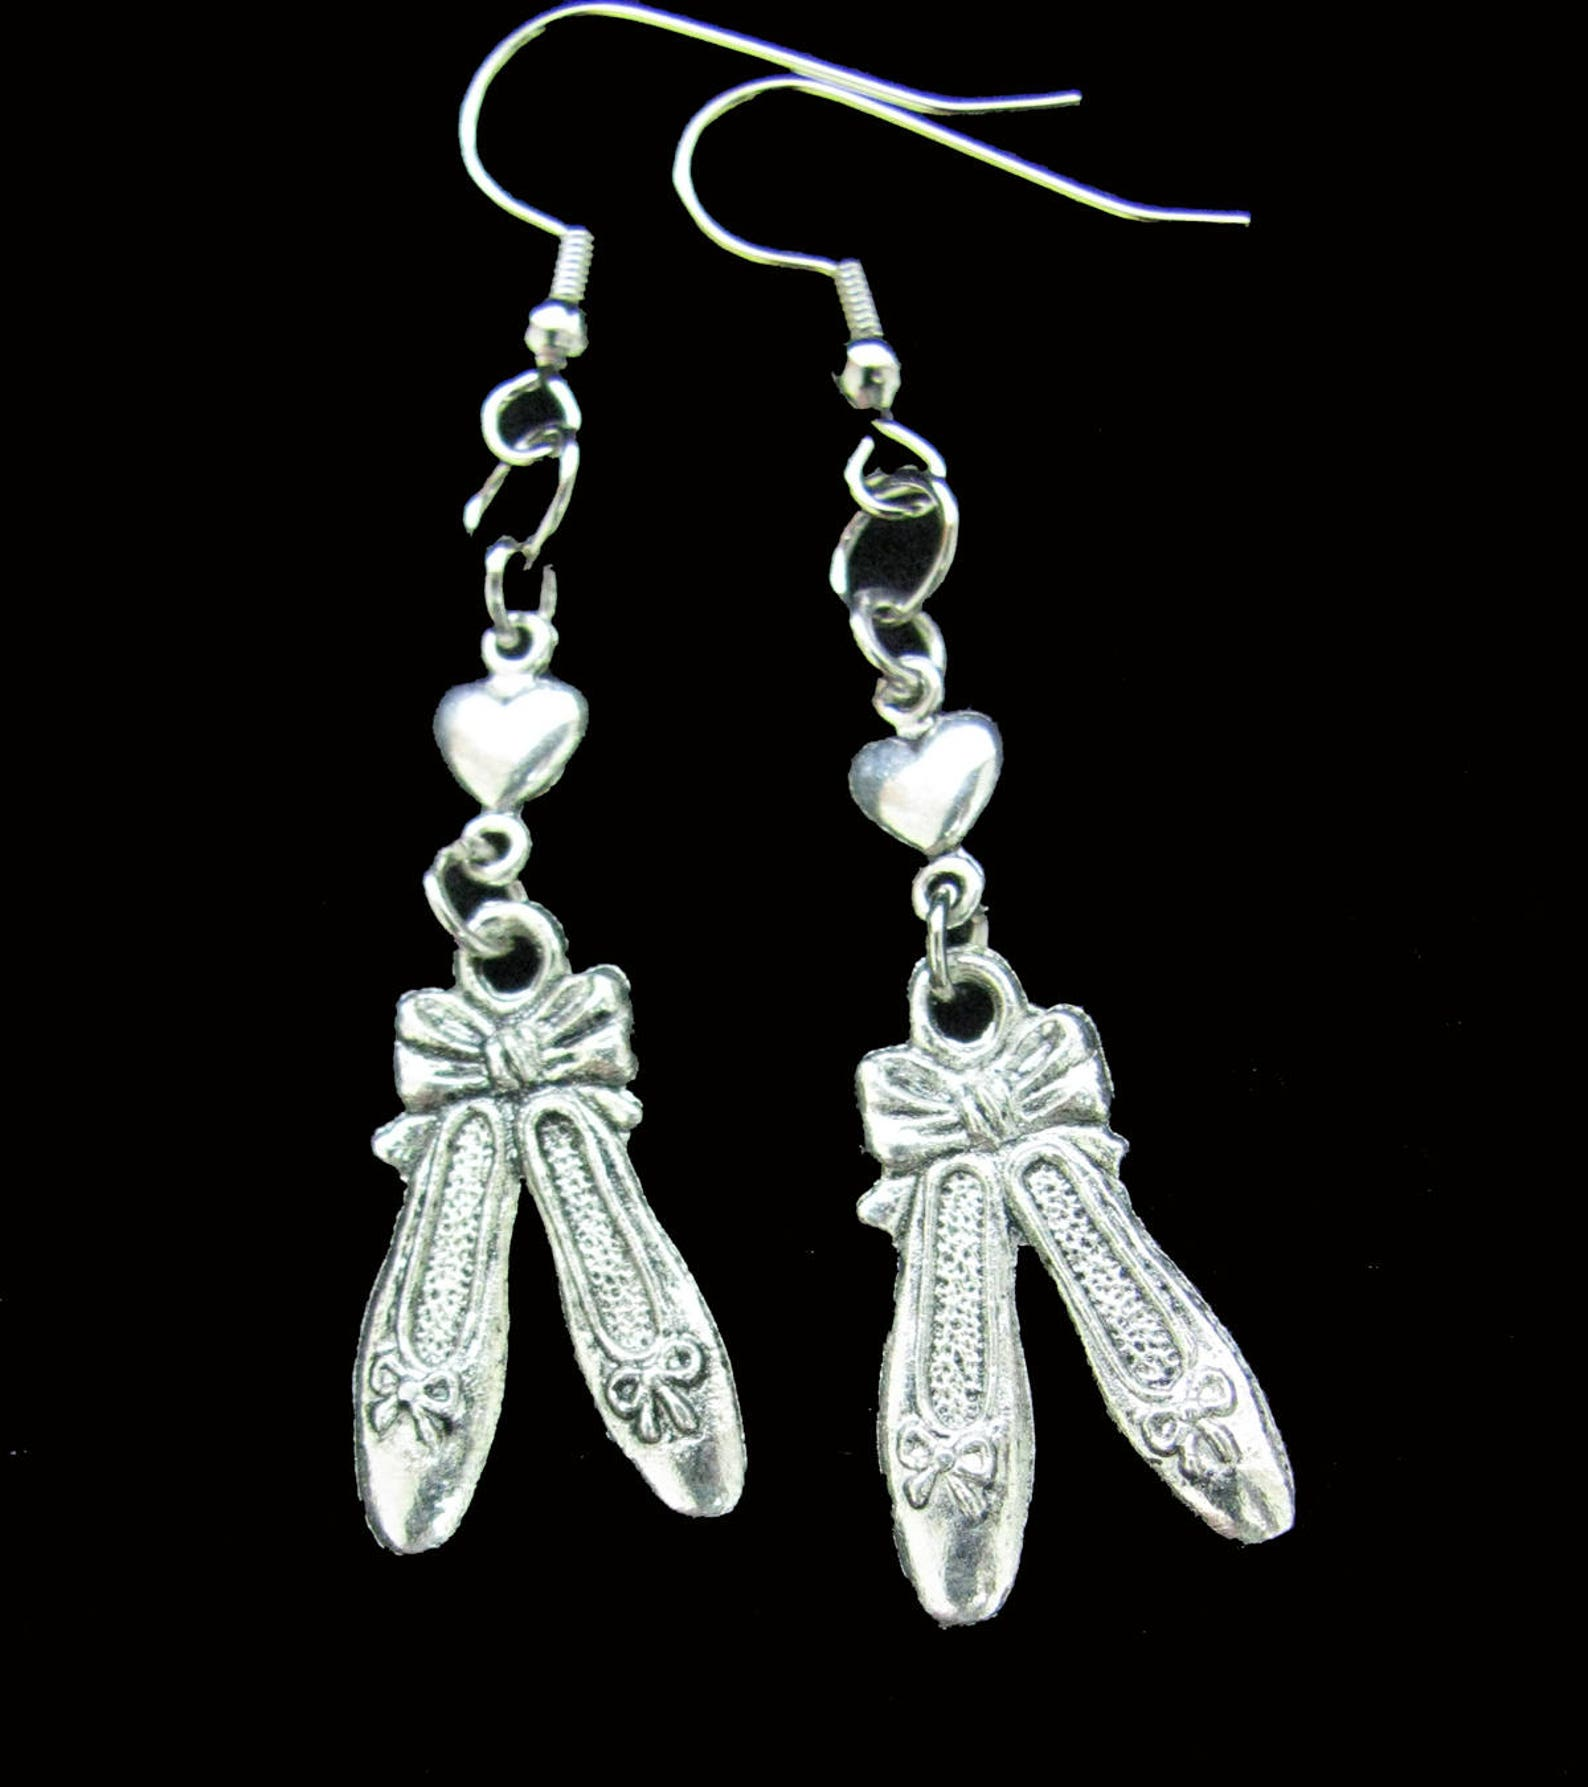 ballet shoes earrings - perfect gift idea for the dancer! - christmas gift idea, stocking stuffer, dance recital gift idea